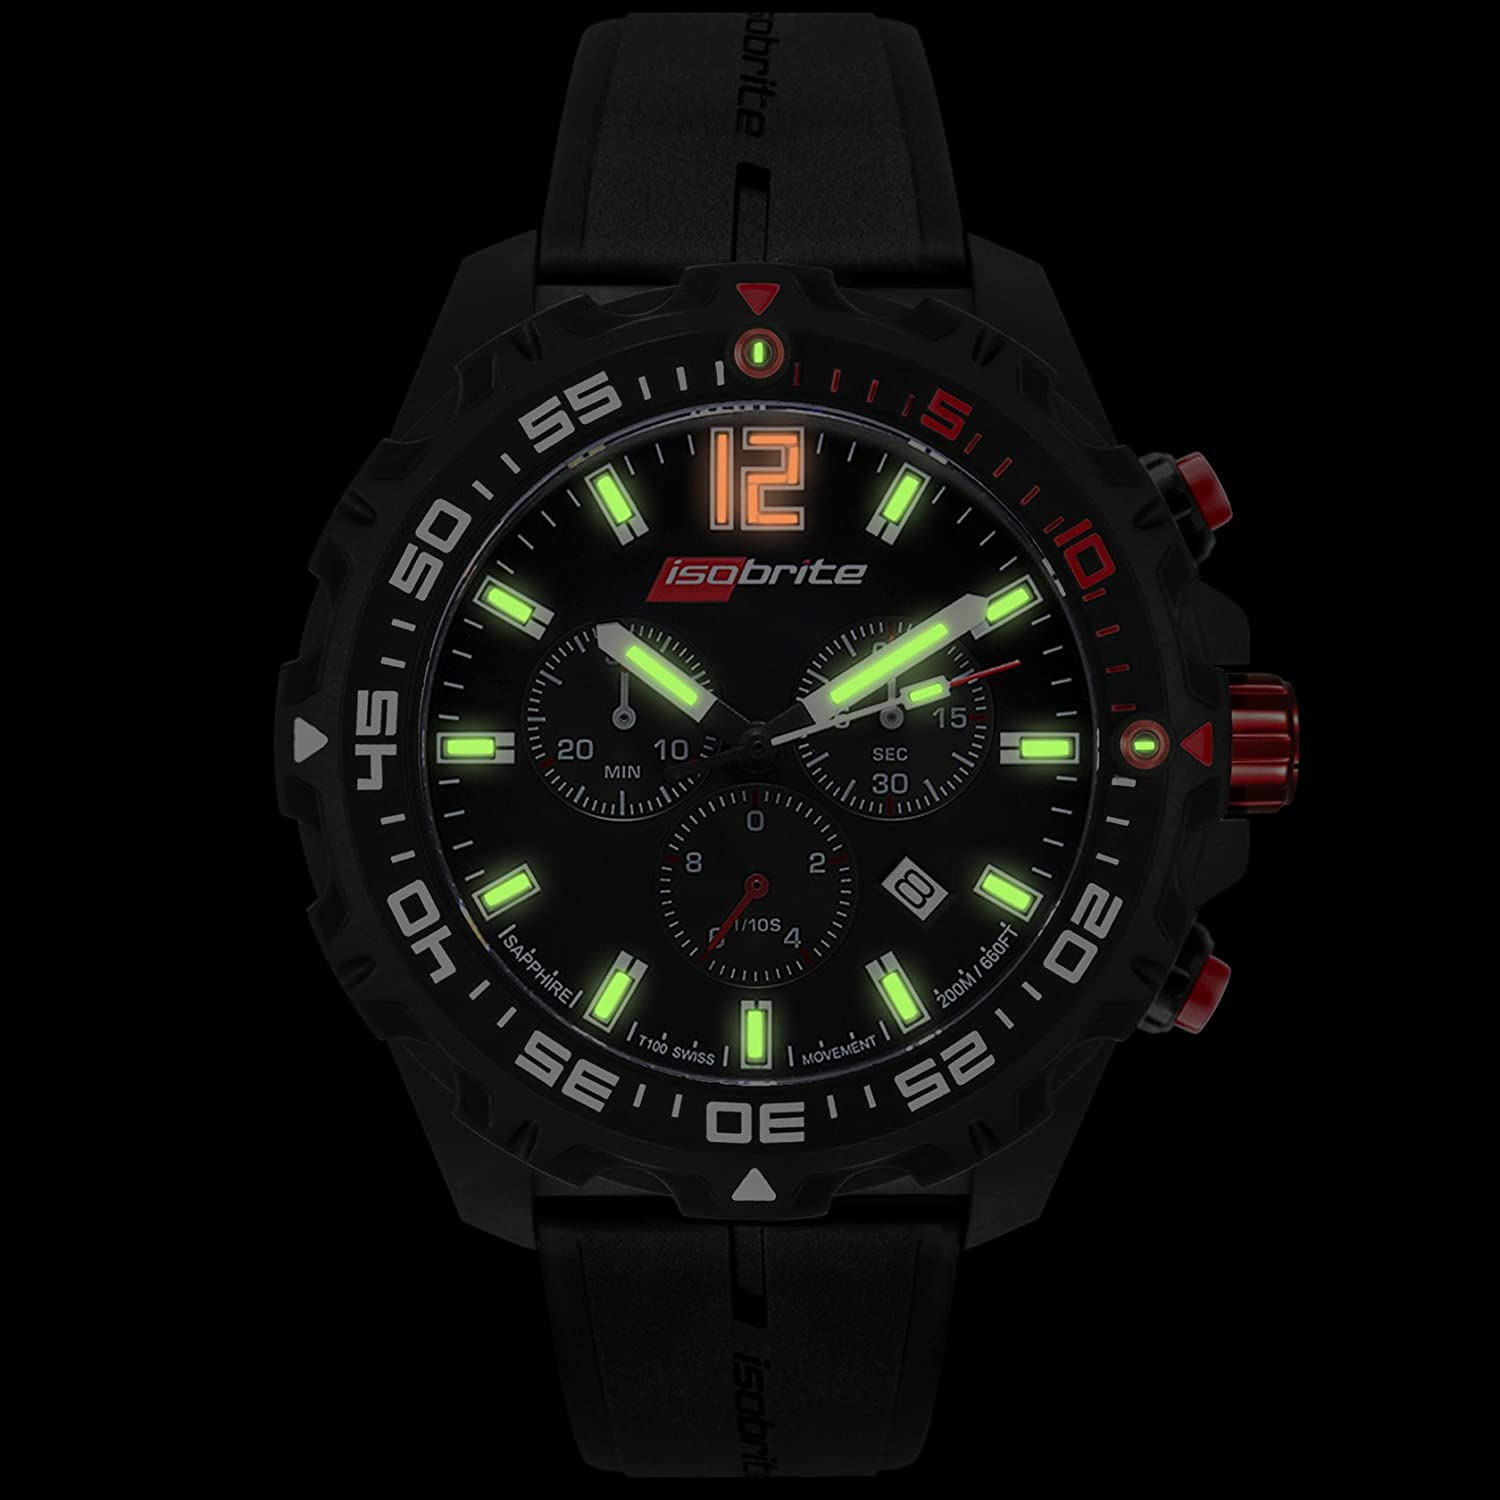 video h watches trijicon illuminated watch b product titanium reg analog photo c